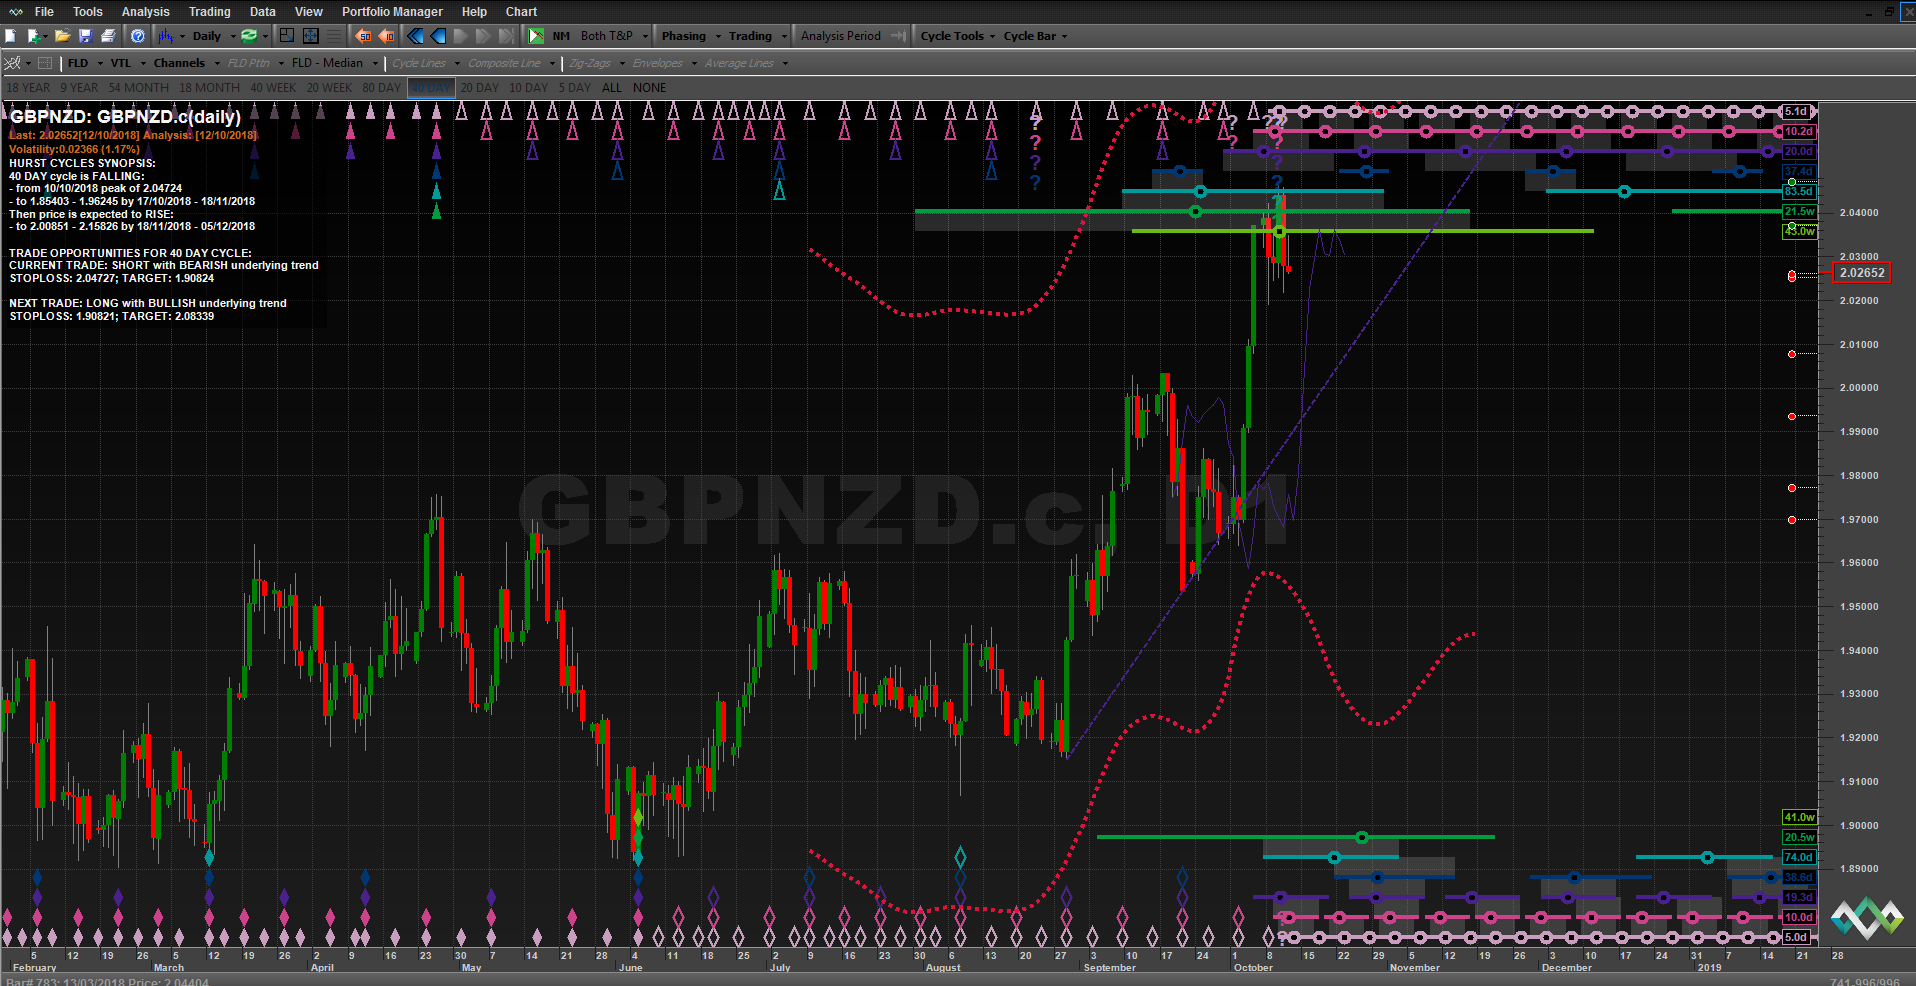 GBPNZD%202018%2010%2012